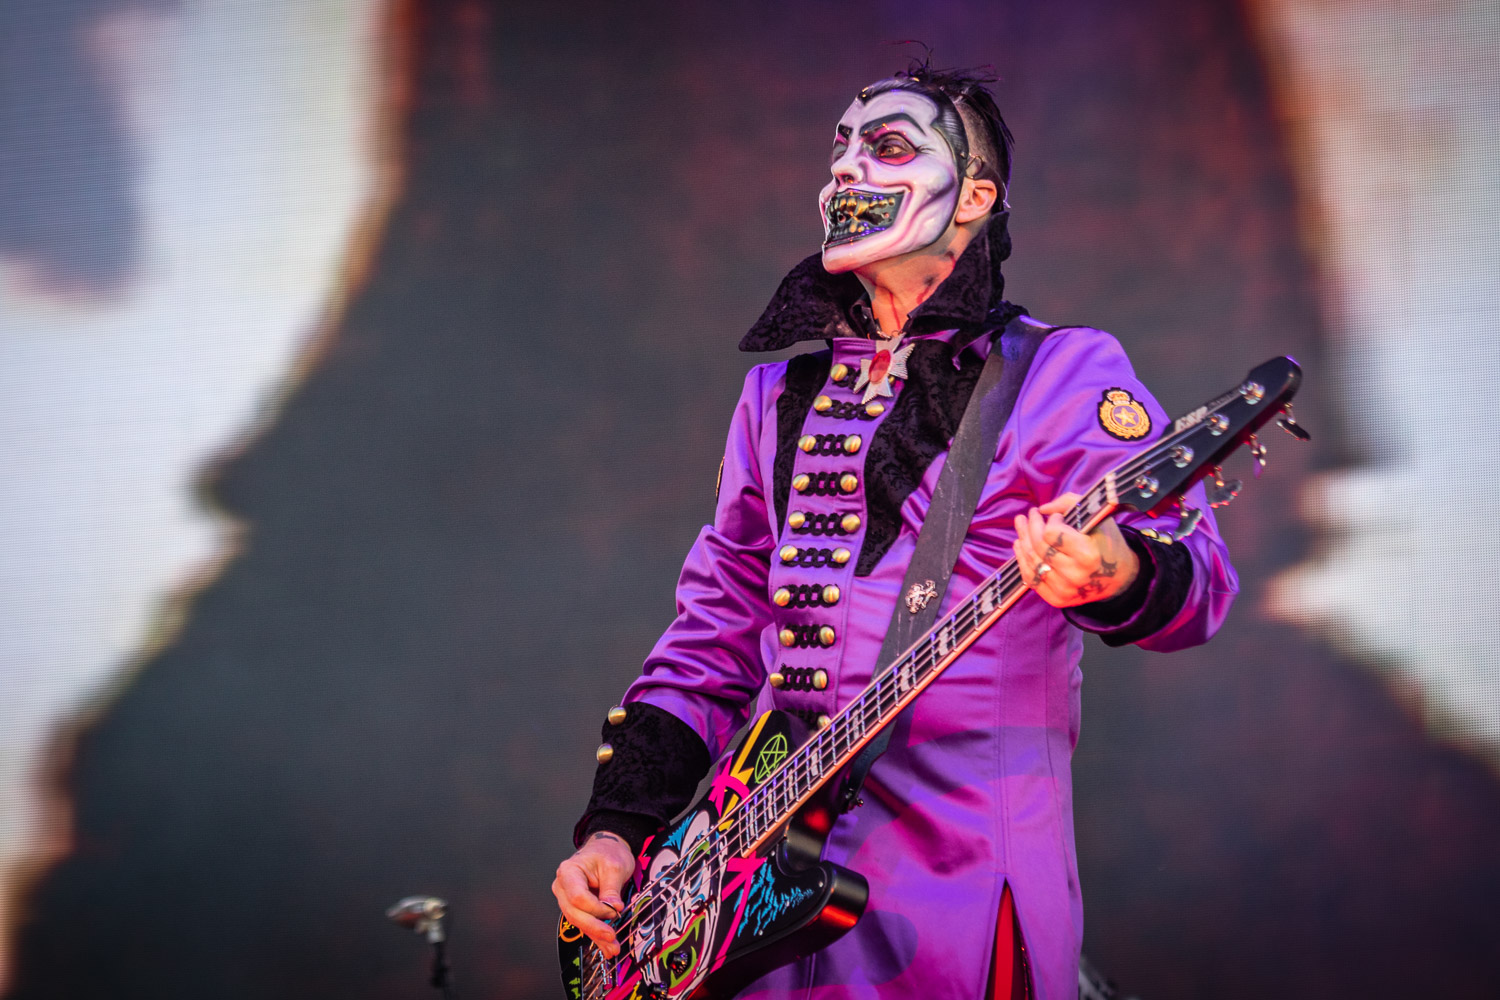 Rob Zombie live on stage at the 2019 Copenhell Metal Festival - here Piggy D on bass